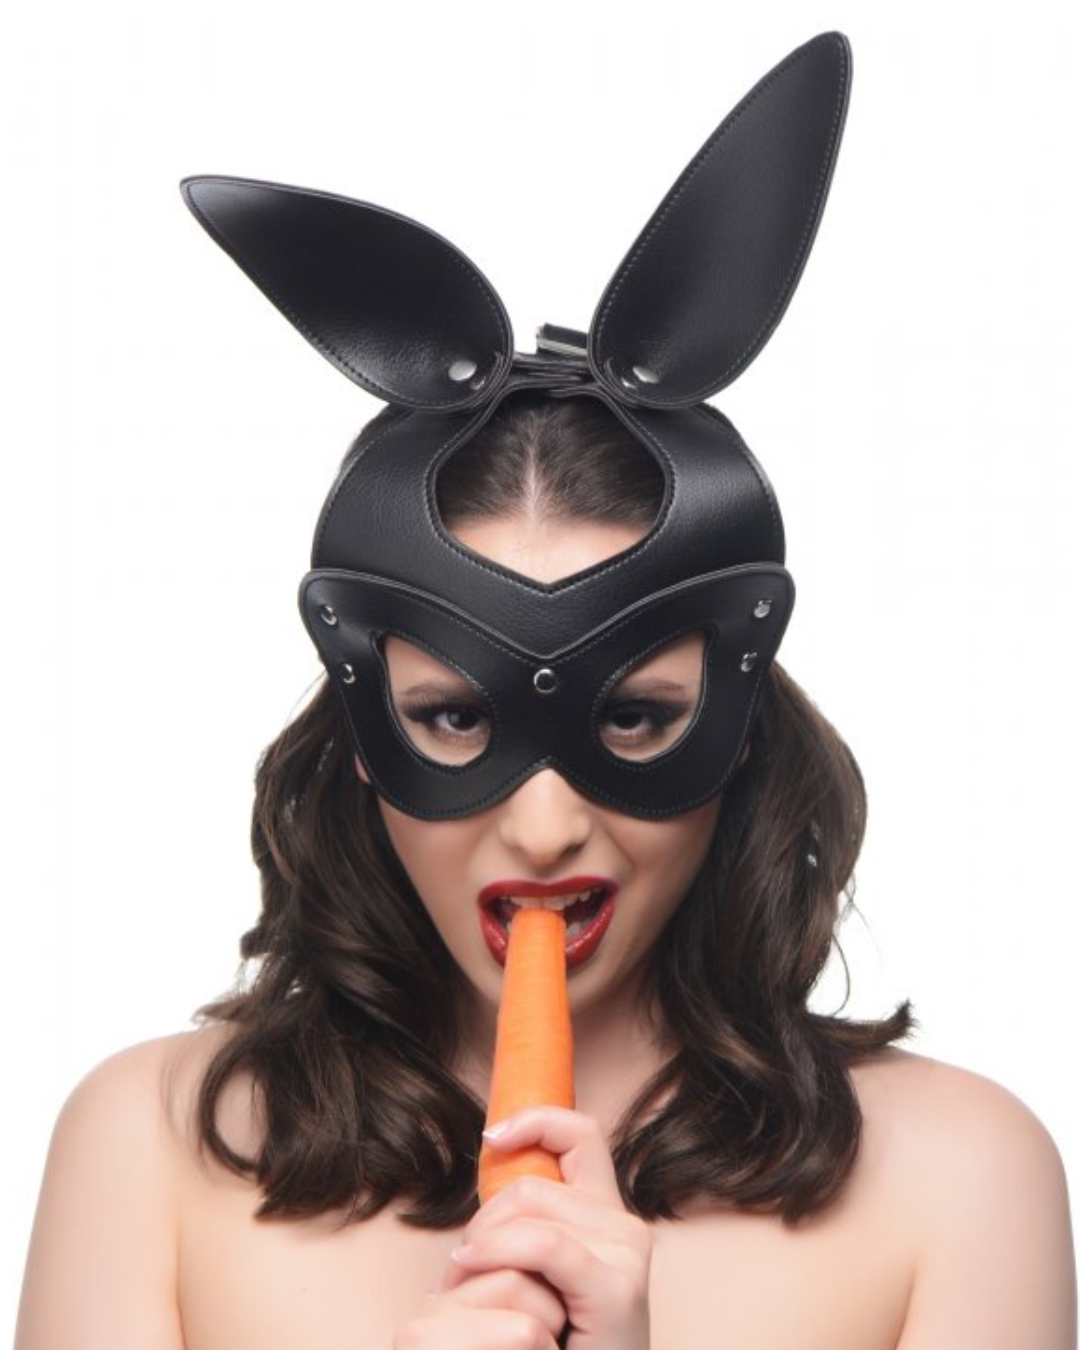 Bad Bunny Vegan Leather Bunny Mask worn by a model eating a carrot